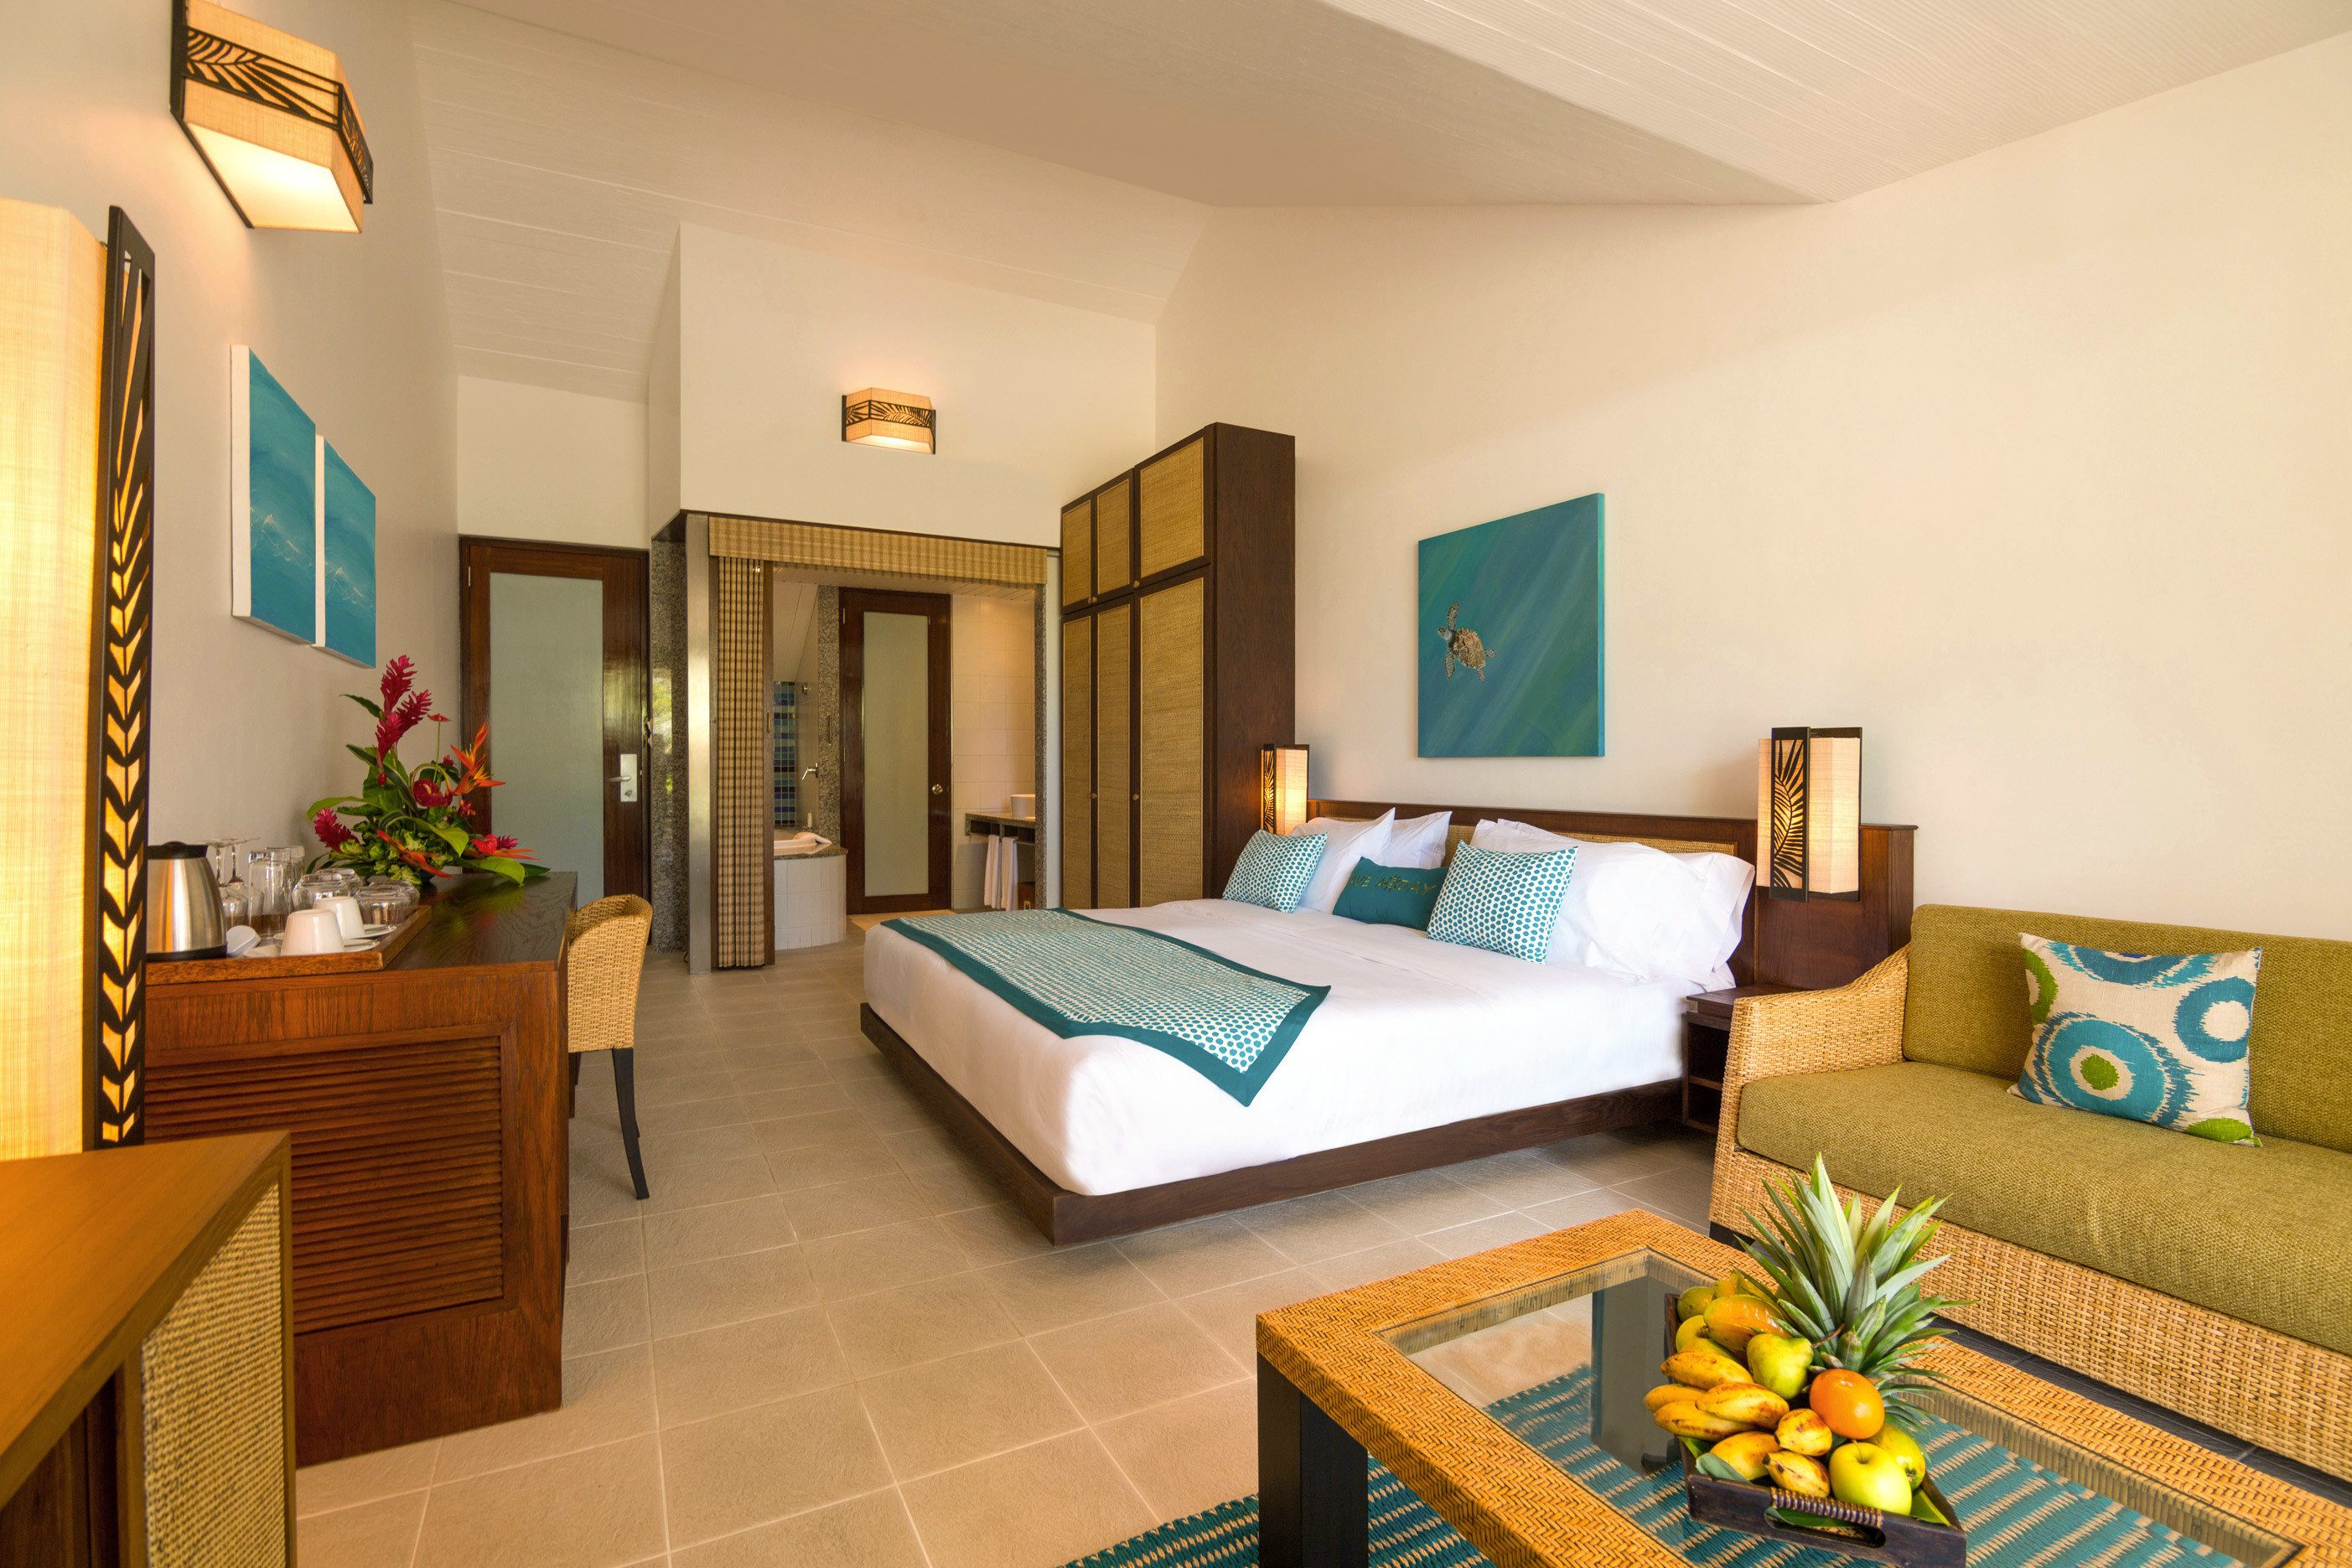 Bedroom Hip Lounge Suite property condominium Villa living room cottage home Resort